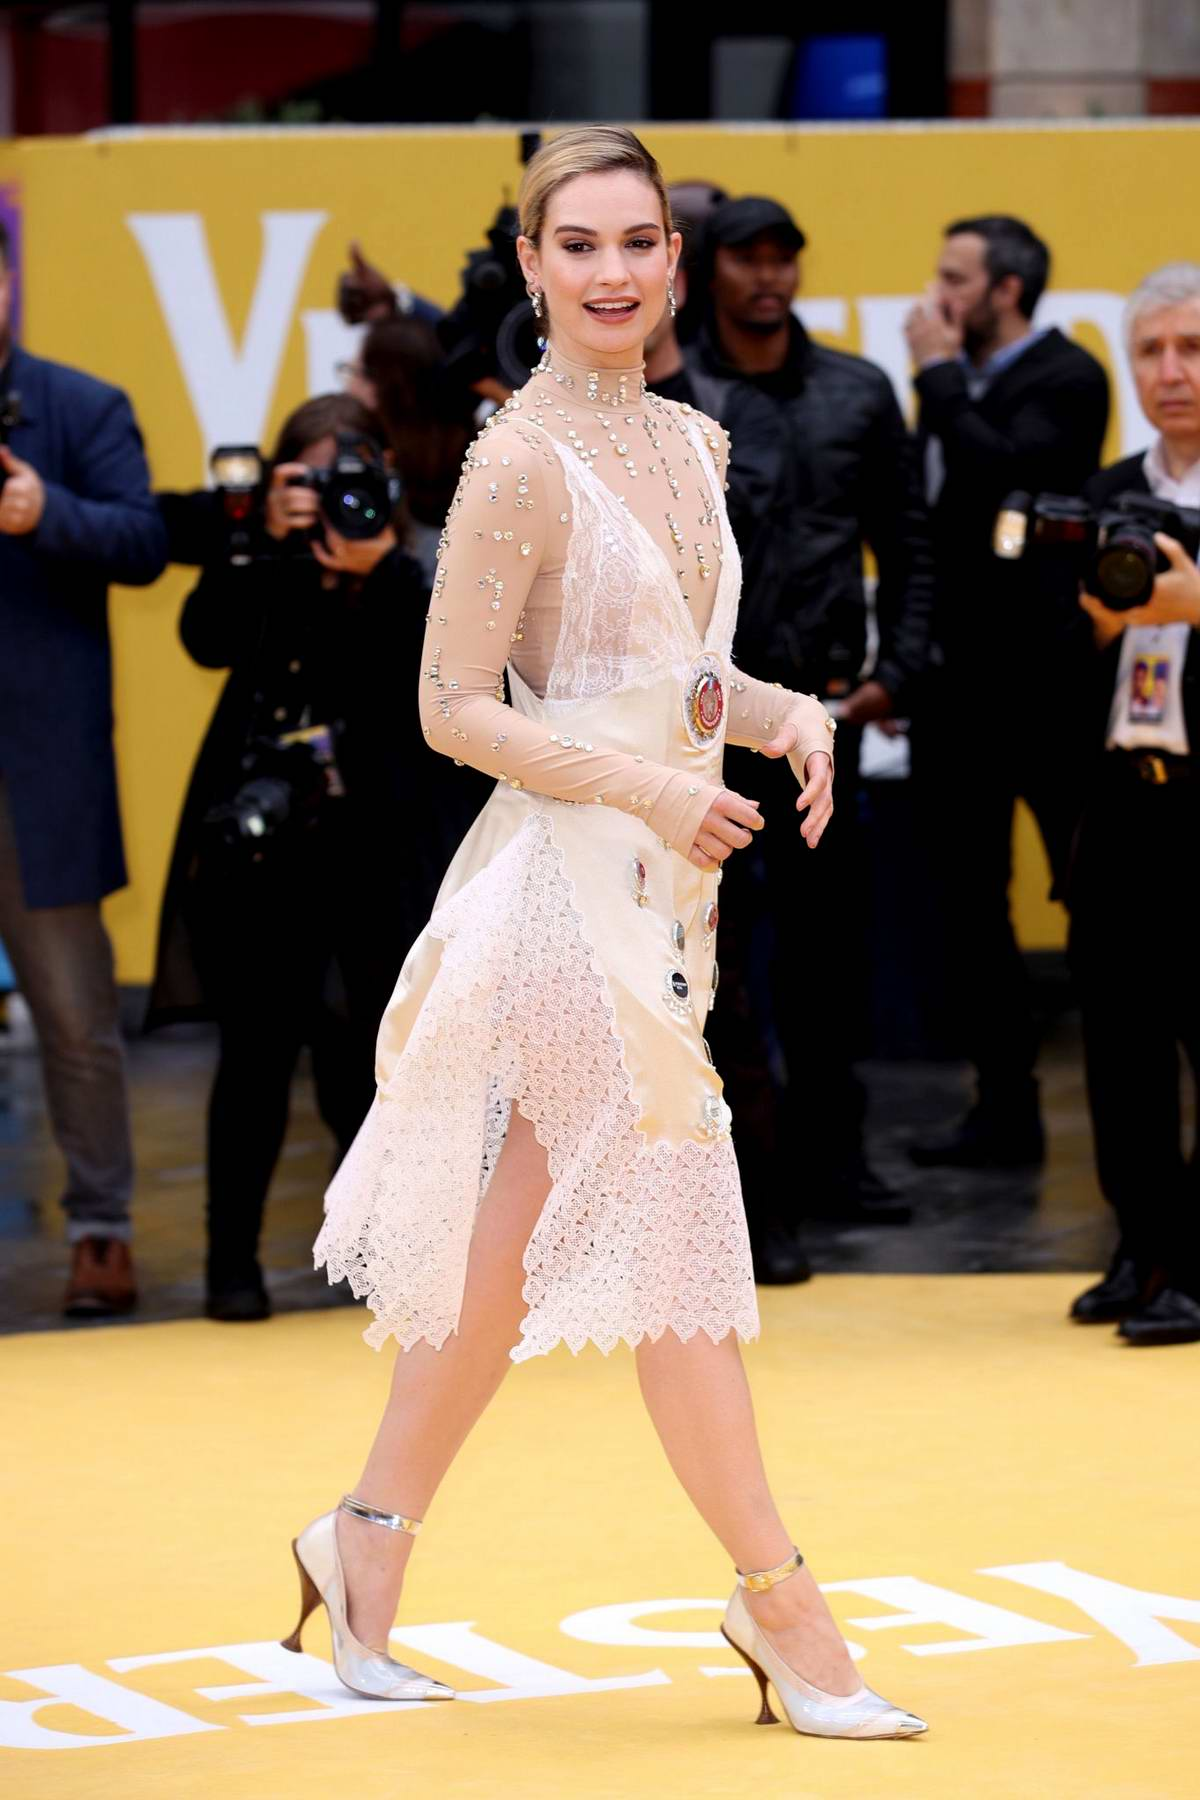 Lily James attends the UK Premiere of 'Yesterday' at Odeon Luxe Leicester Square in London, UK